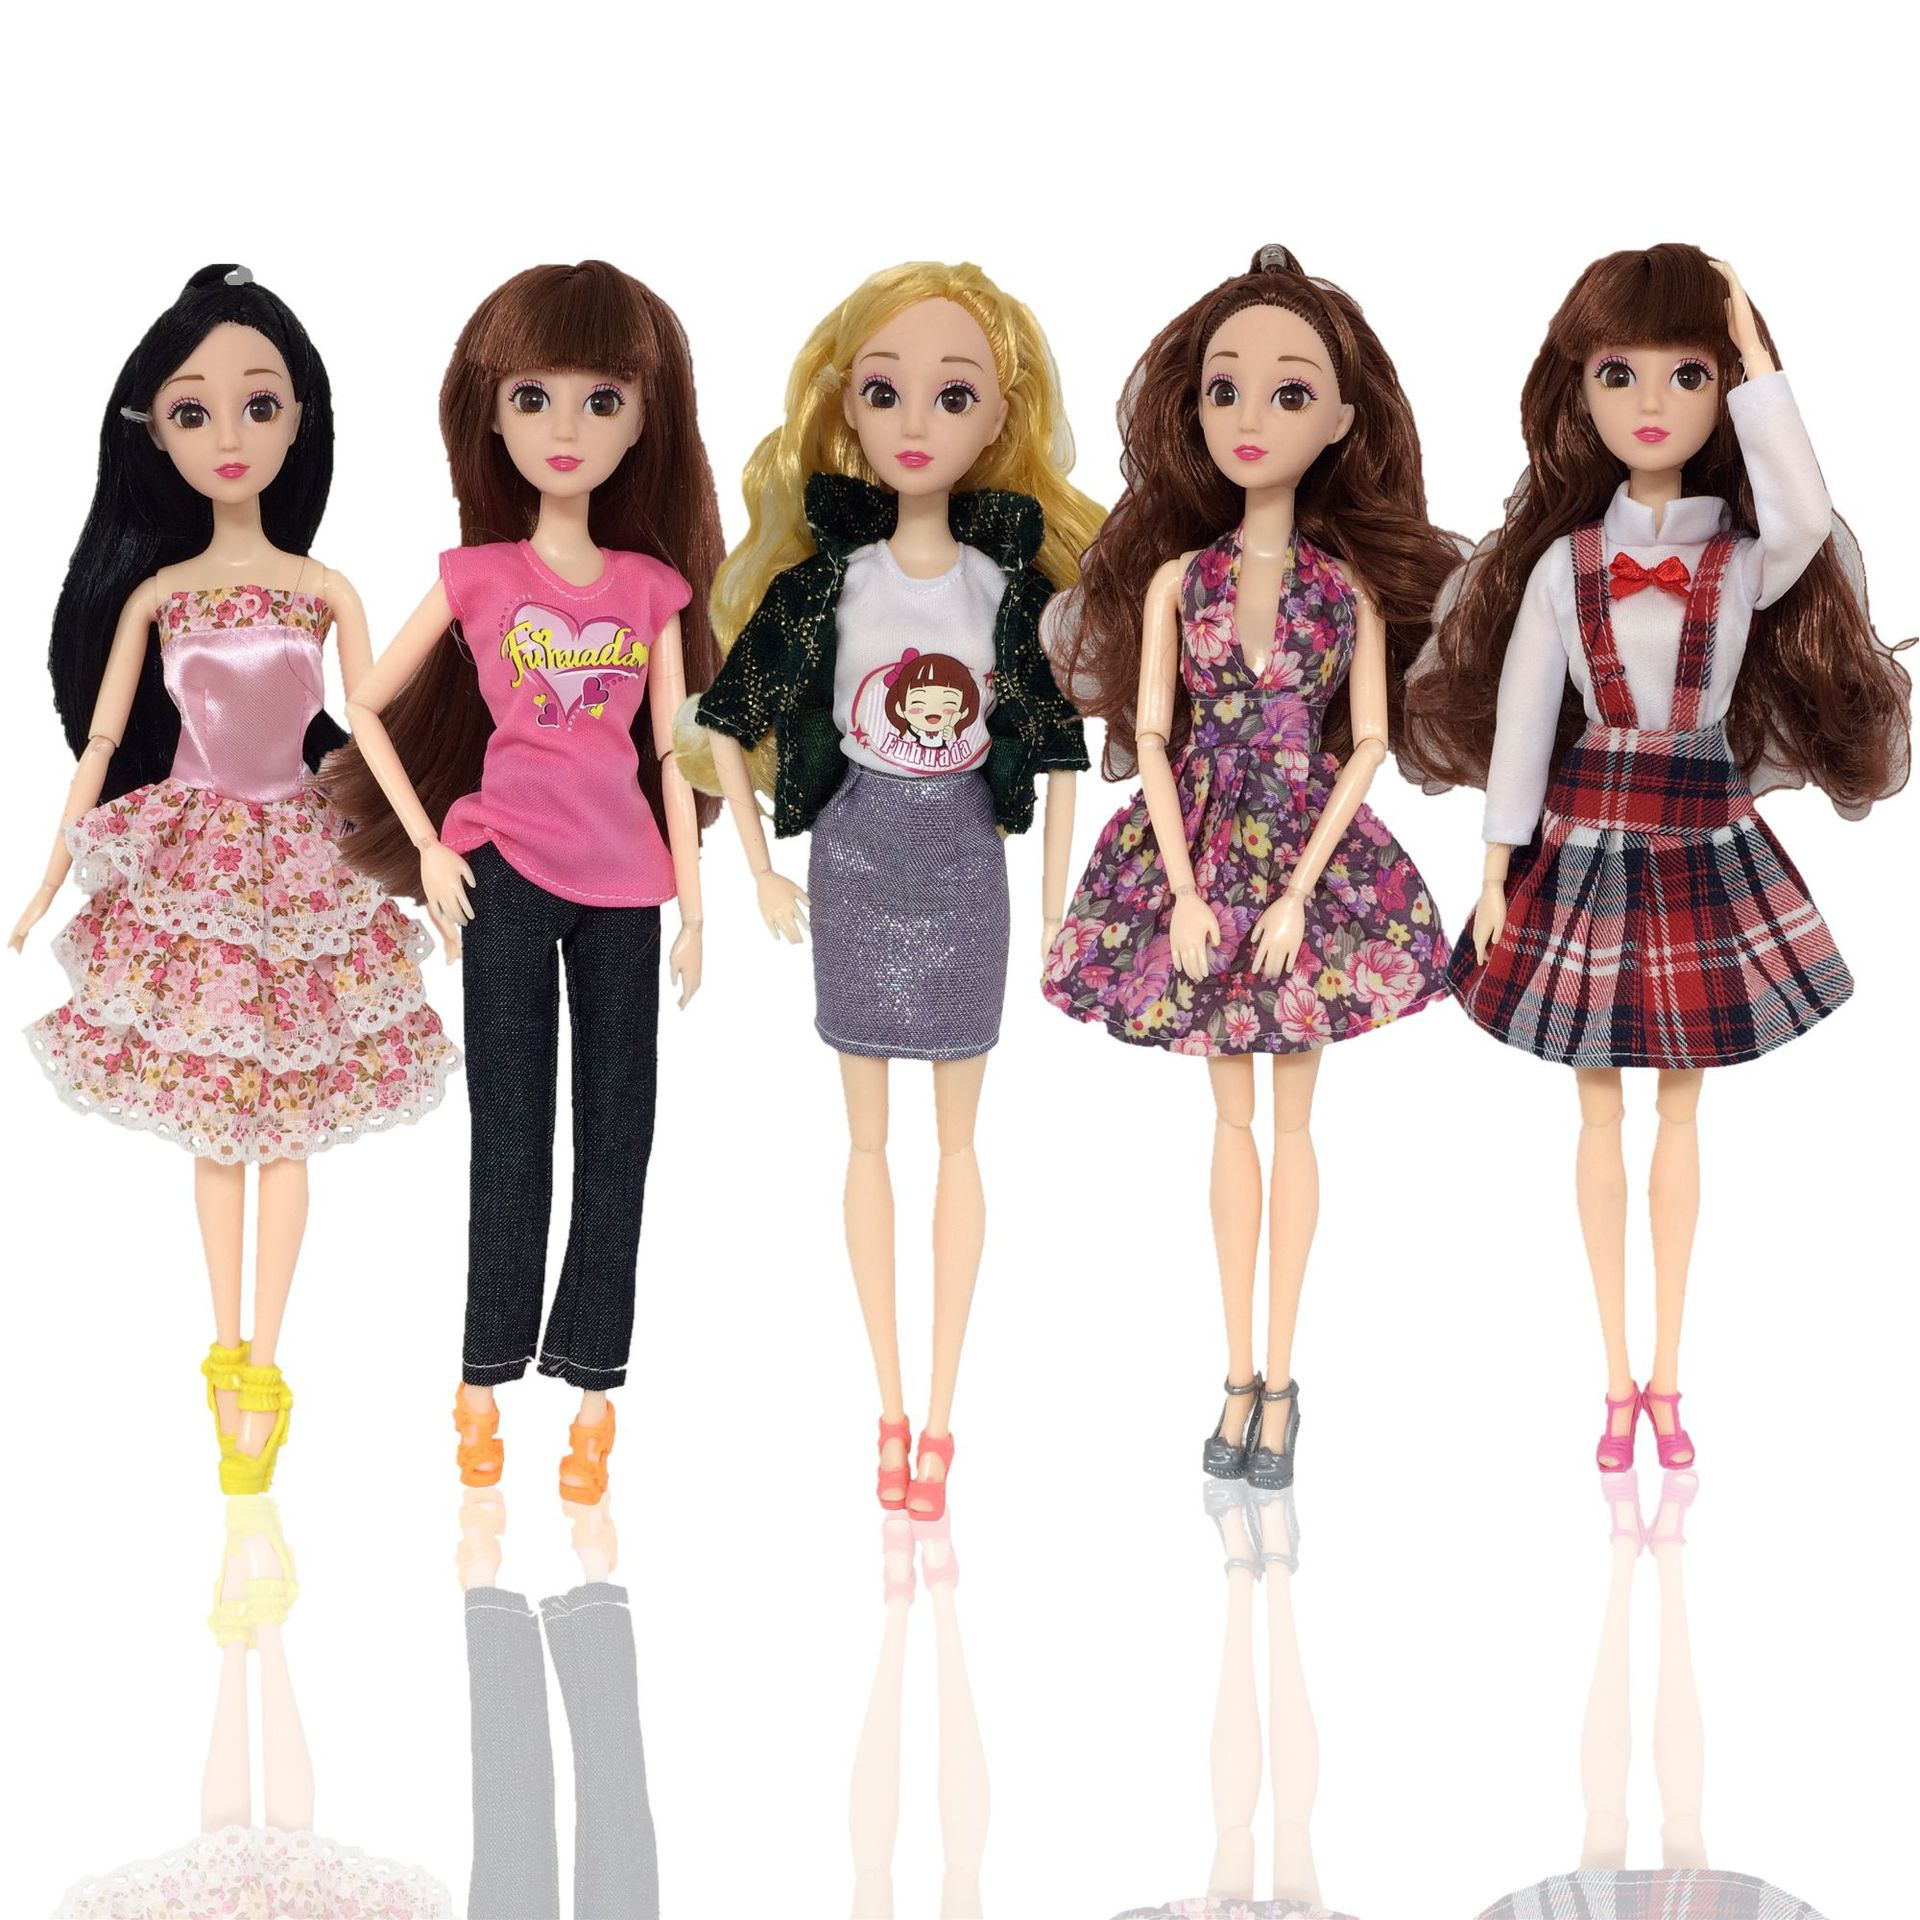 30cm BJD Doll DIY Dolls Clothes 1/6 Girls Body Skirt Coat 3D Eyes Joints Moveable Fashion Doll Accessories Toys For Girls Gift